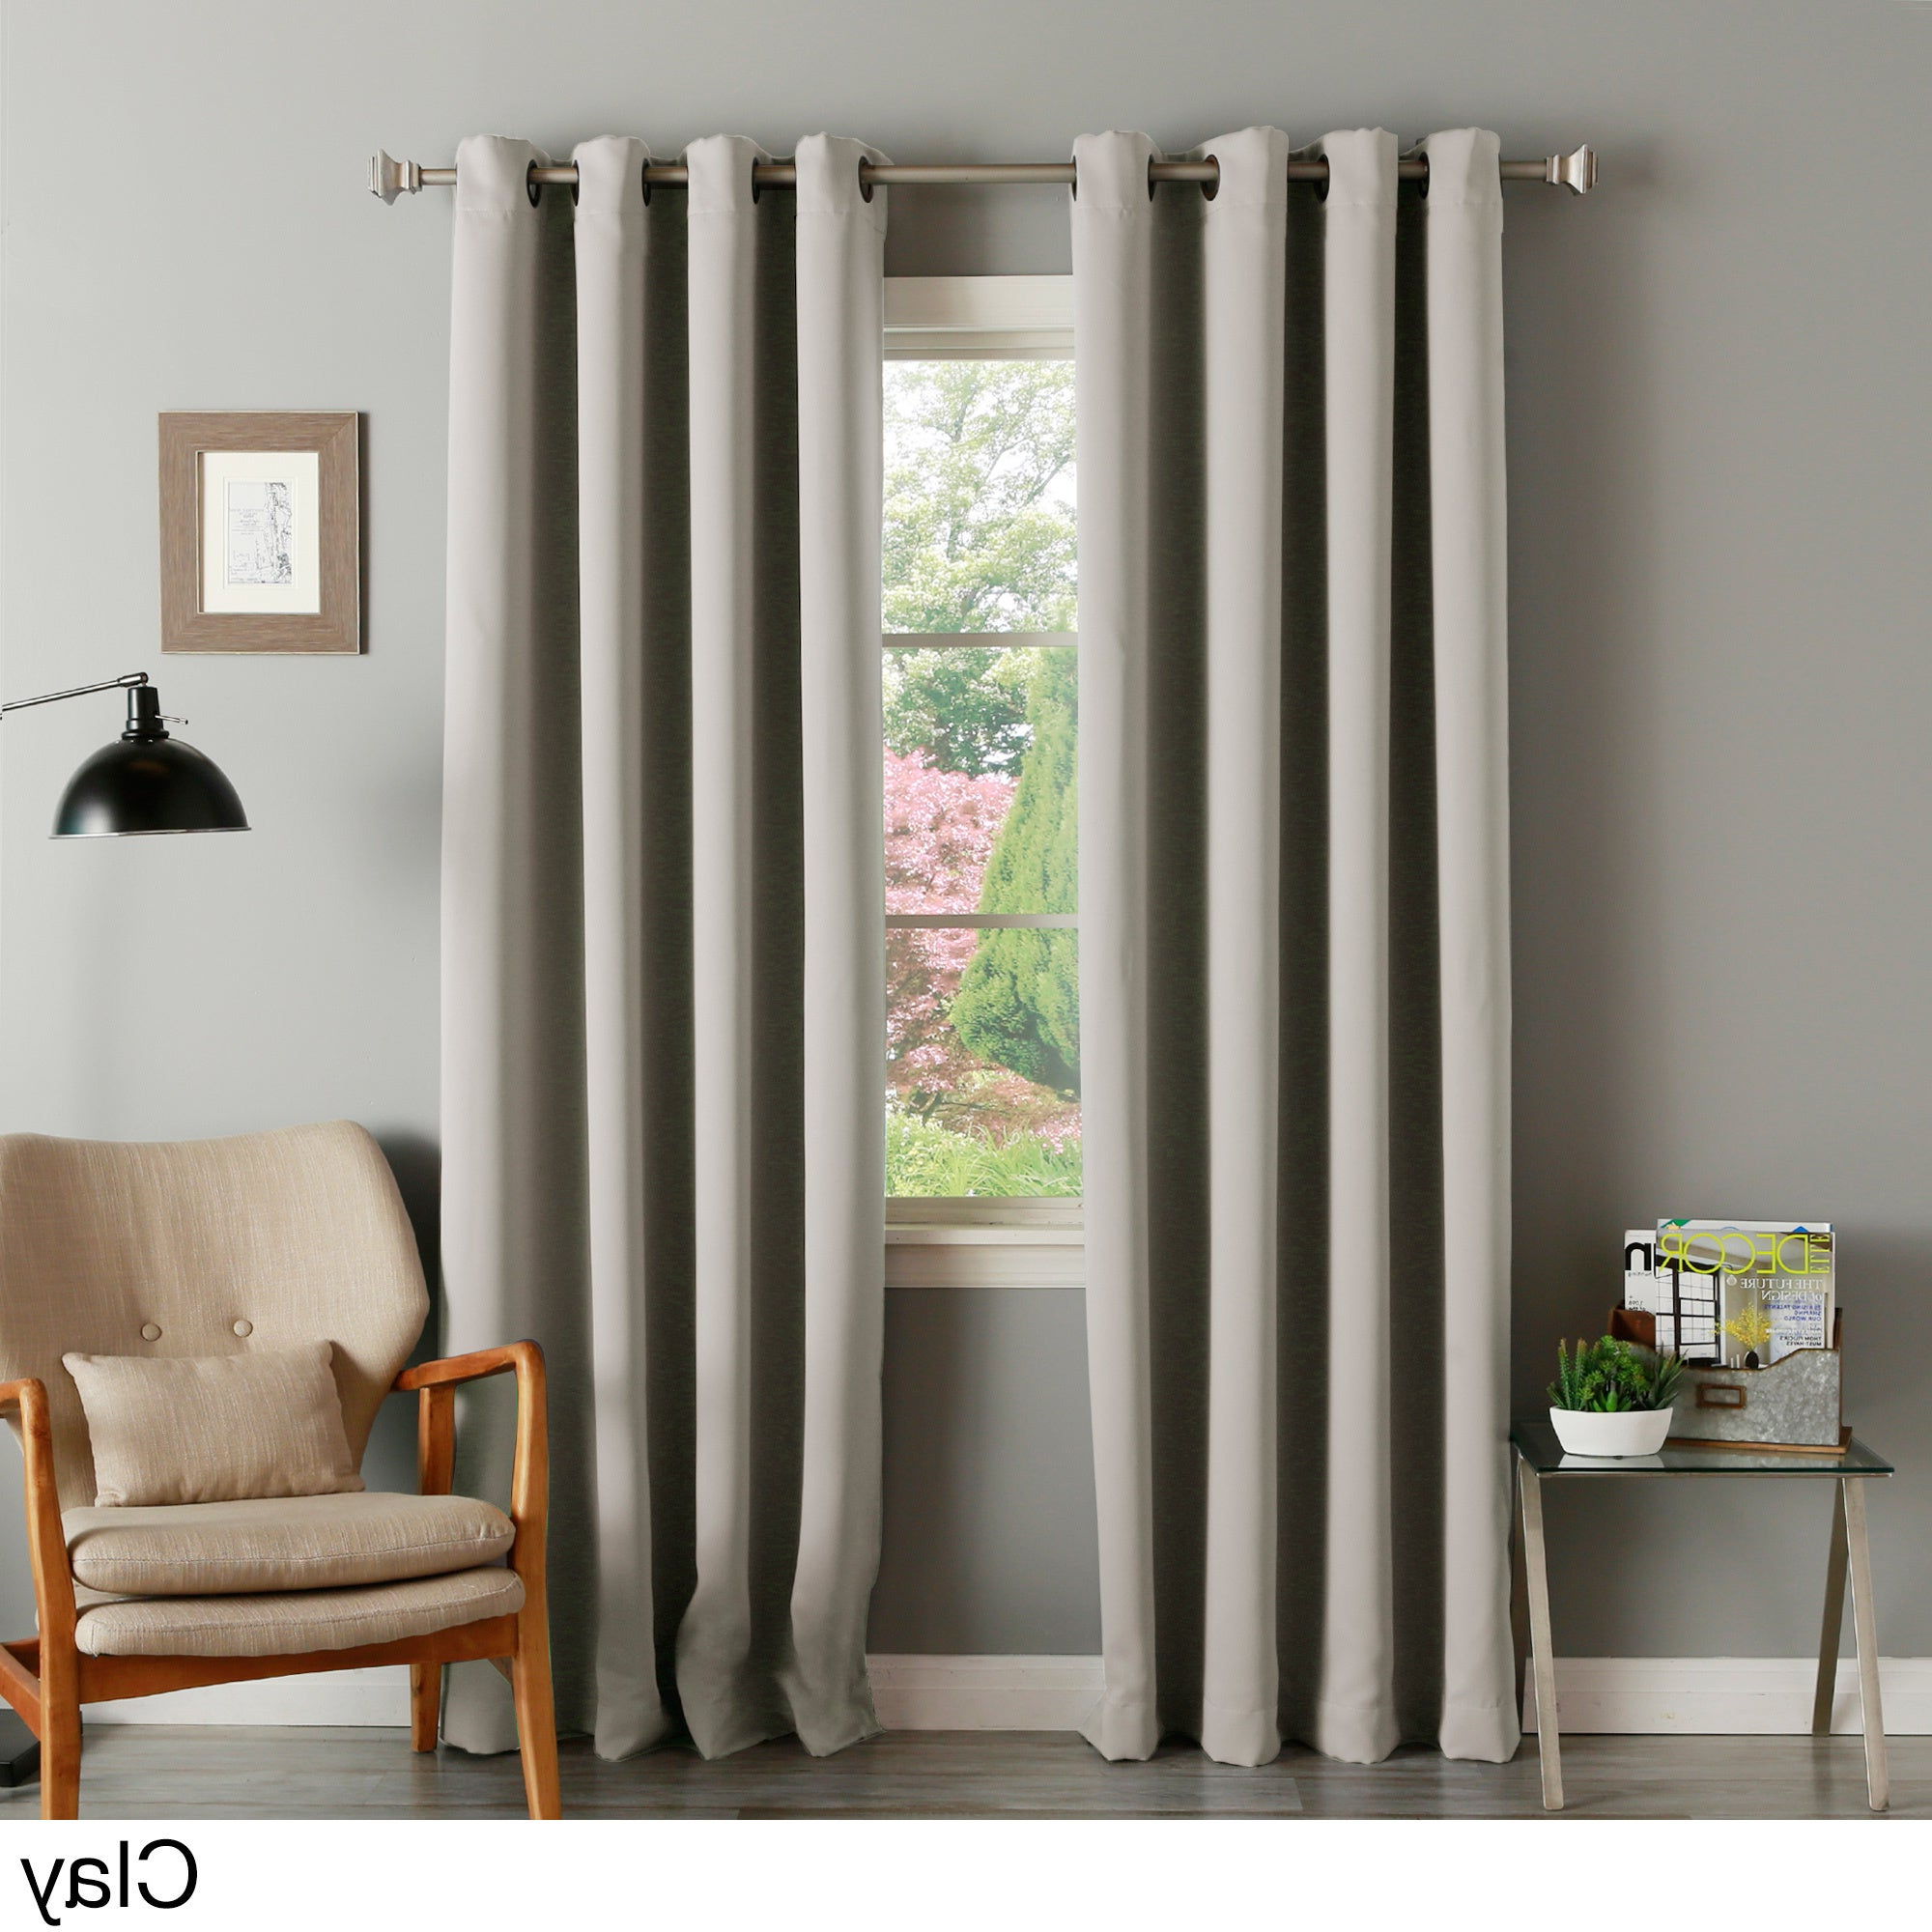 Aurora Home Thermal Insulated Blackout Grommet Top Curtain Panel Pair Within Most Popular Insulated Thermal Blackout Curtain Panel Pairs (View 2 of 20)